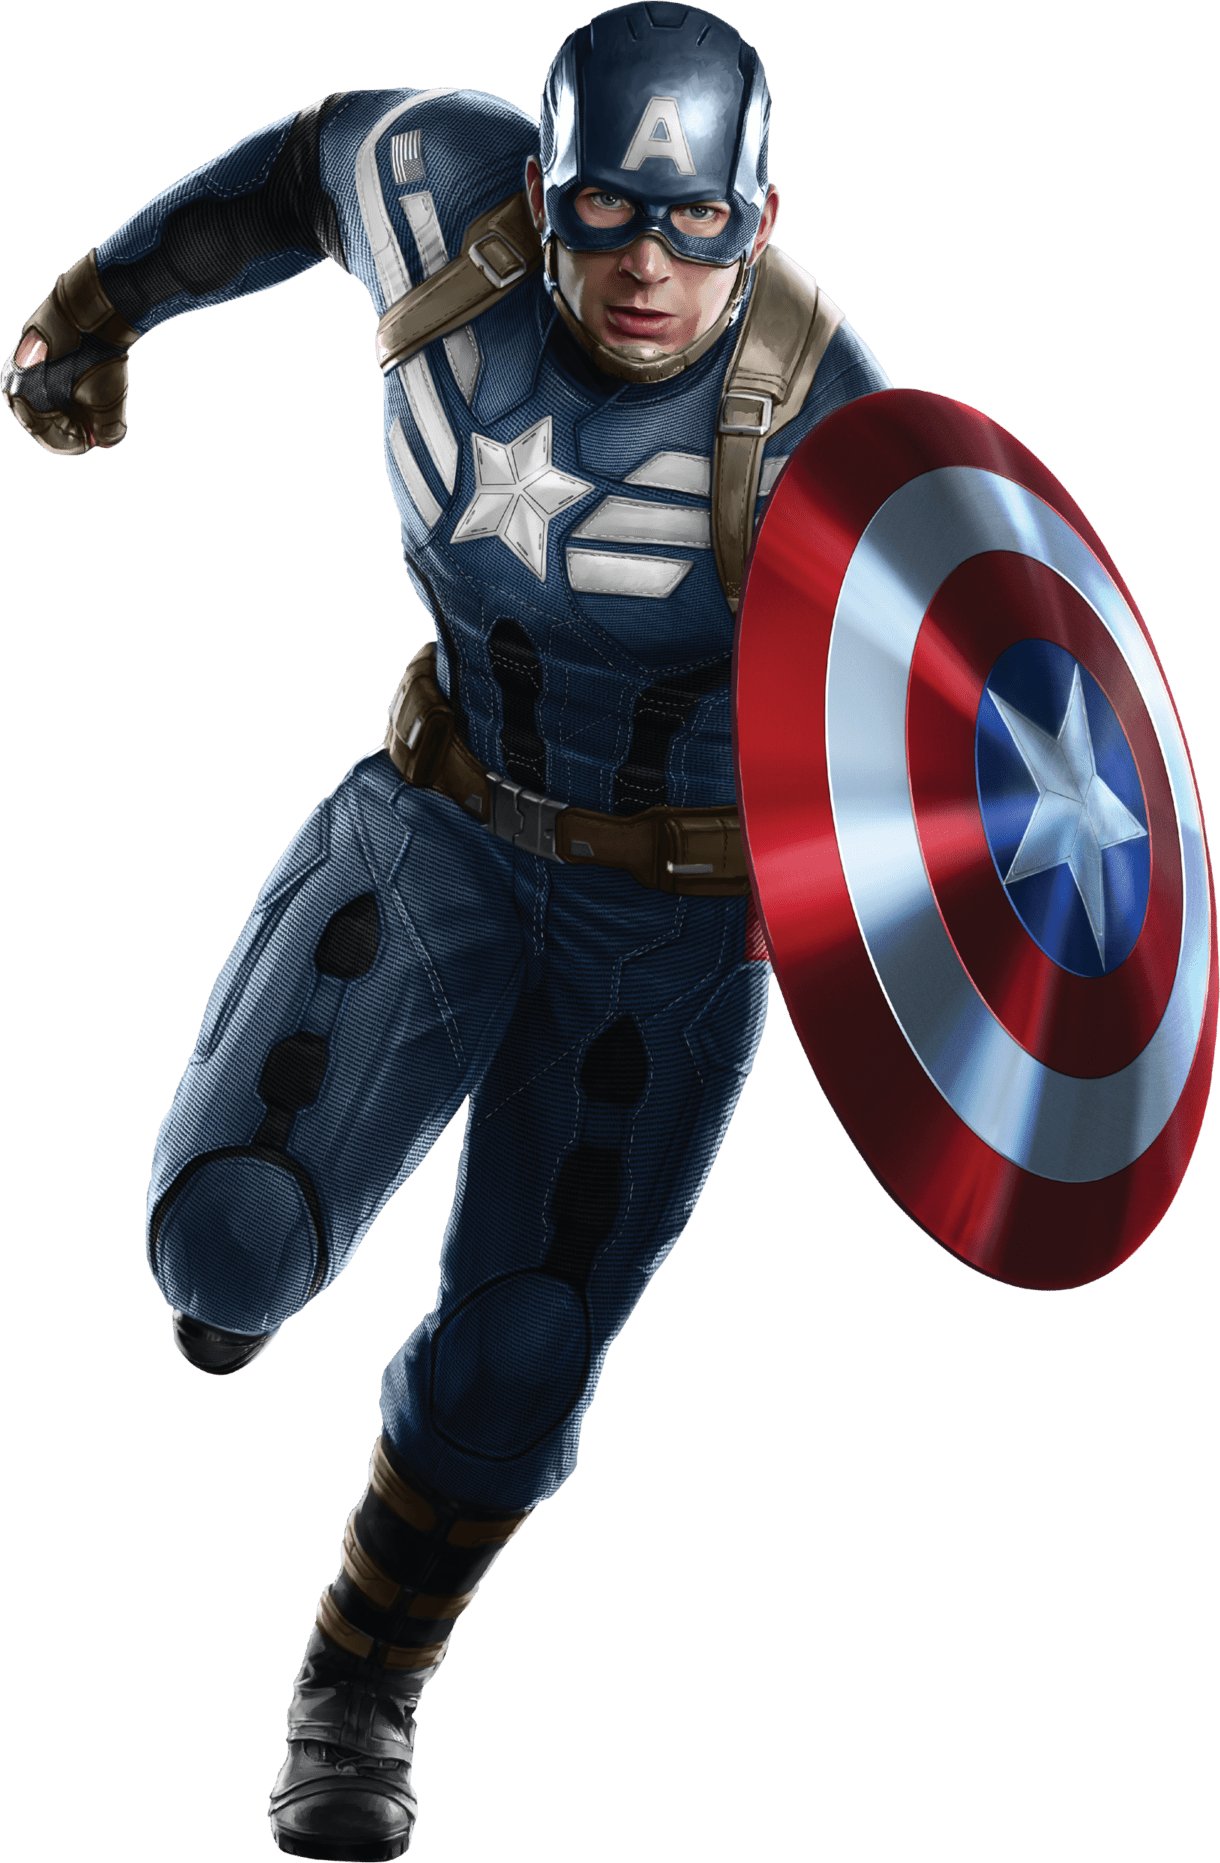 Captain America PNG Image - PurePNG   Free transparent CC0 PNG Image Library